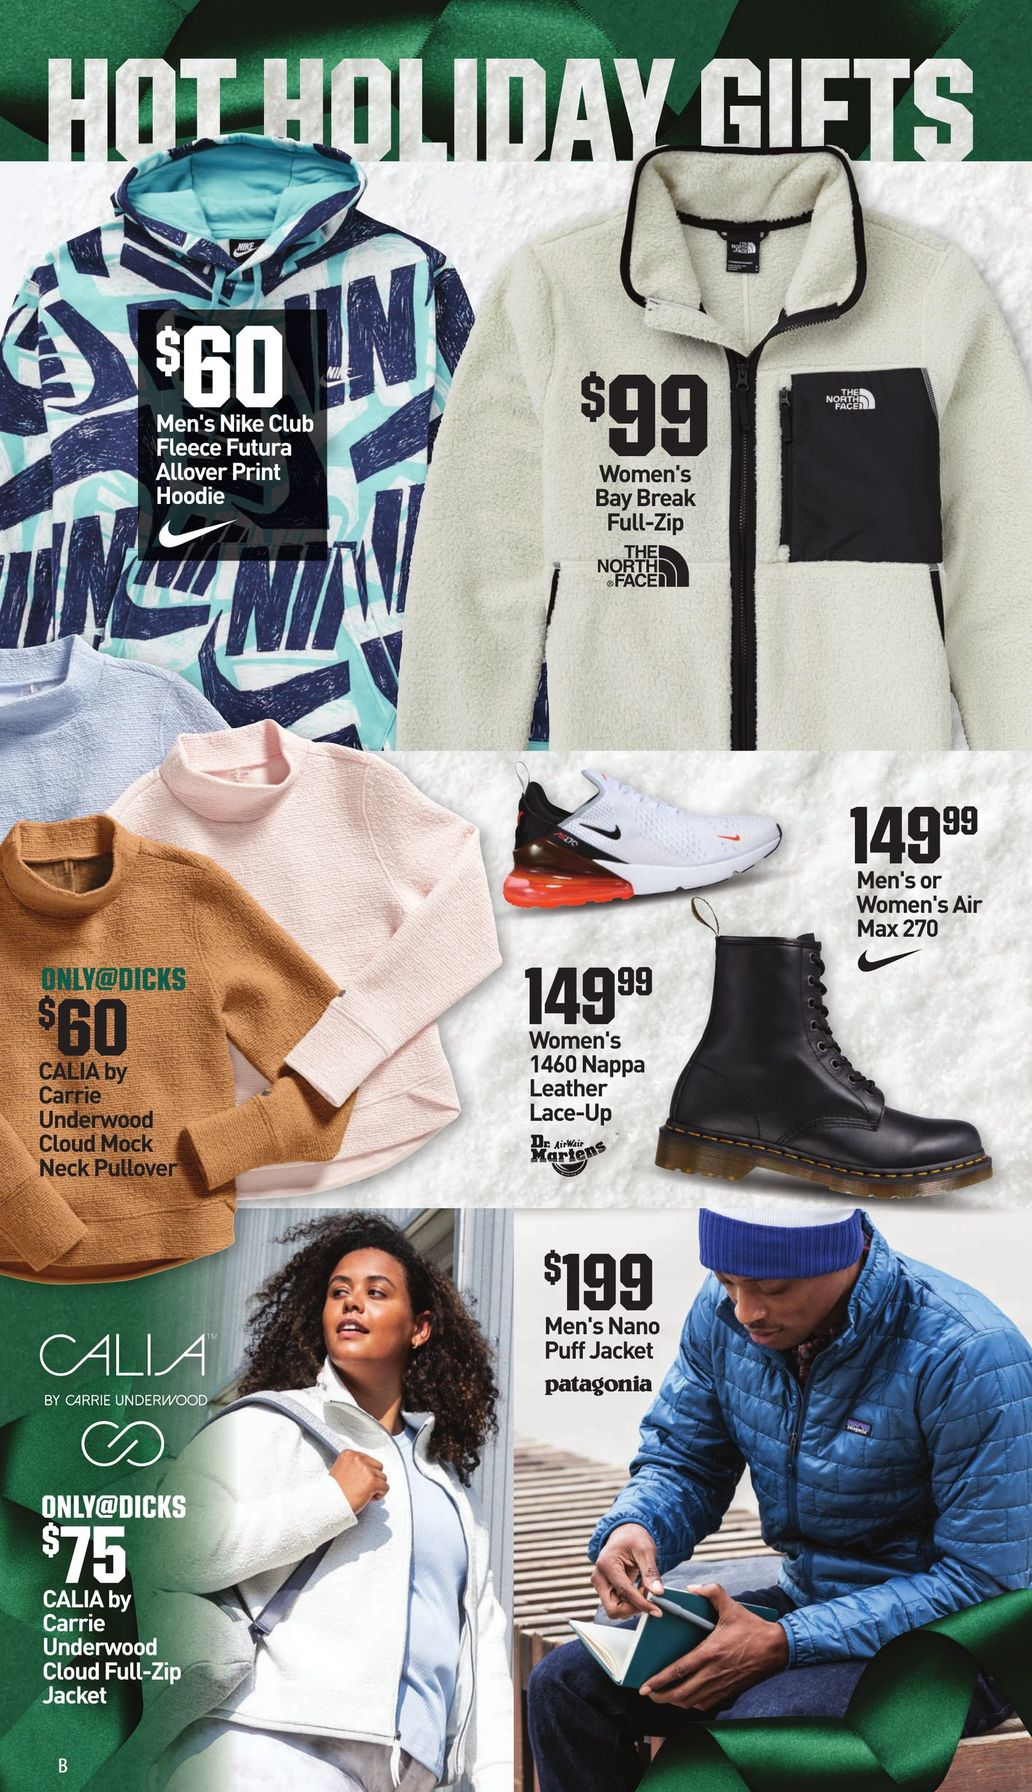 Dick's Sporting Goods Black Friday 2020 Page 8